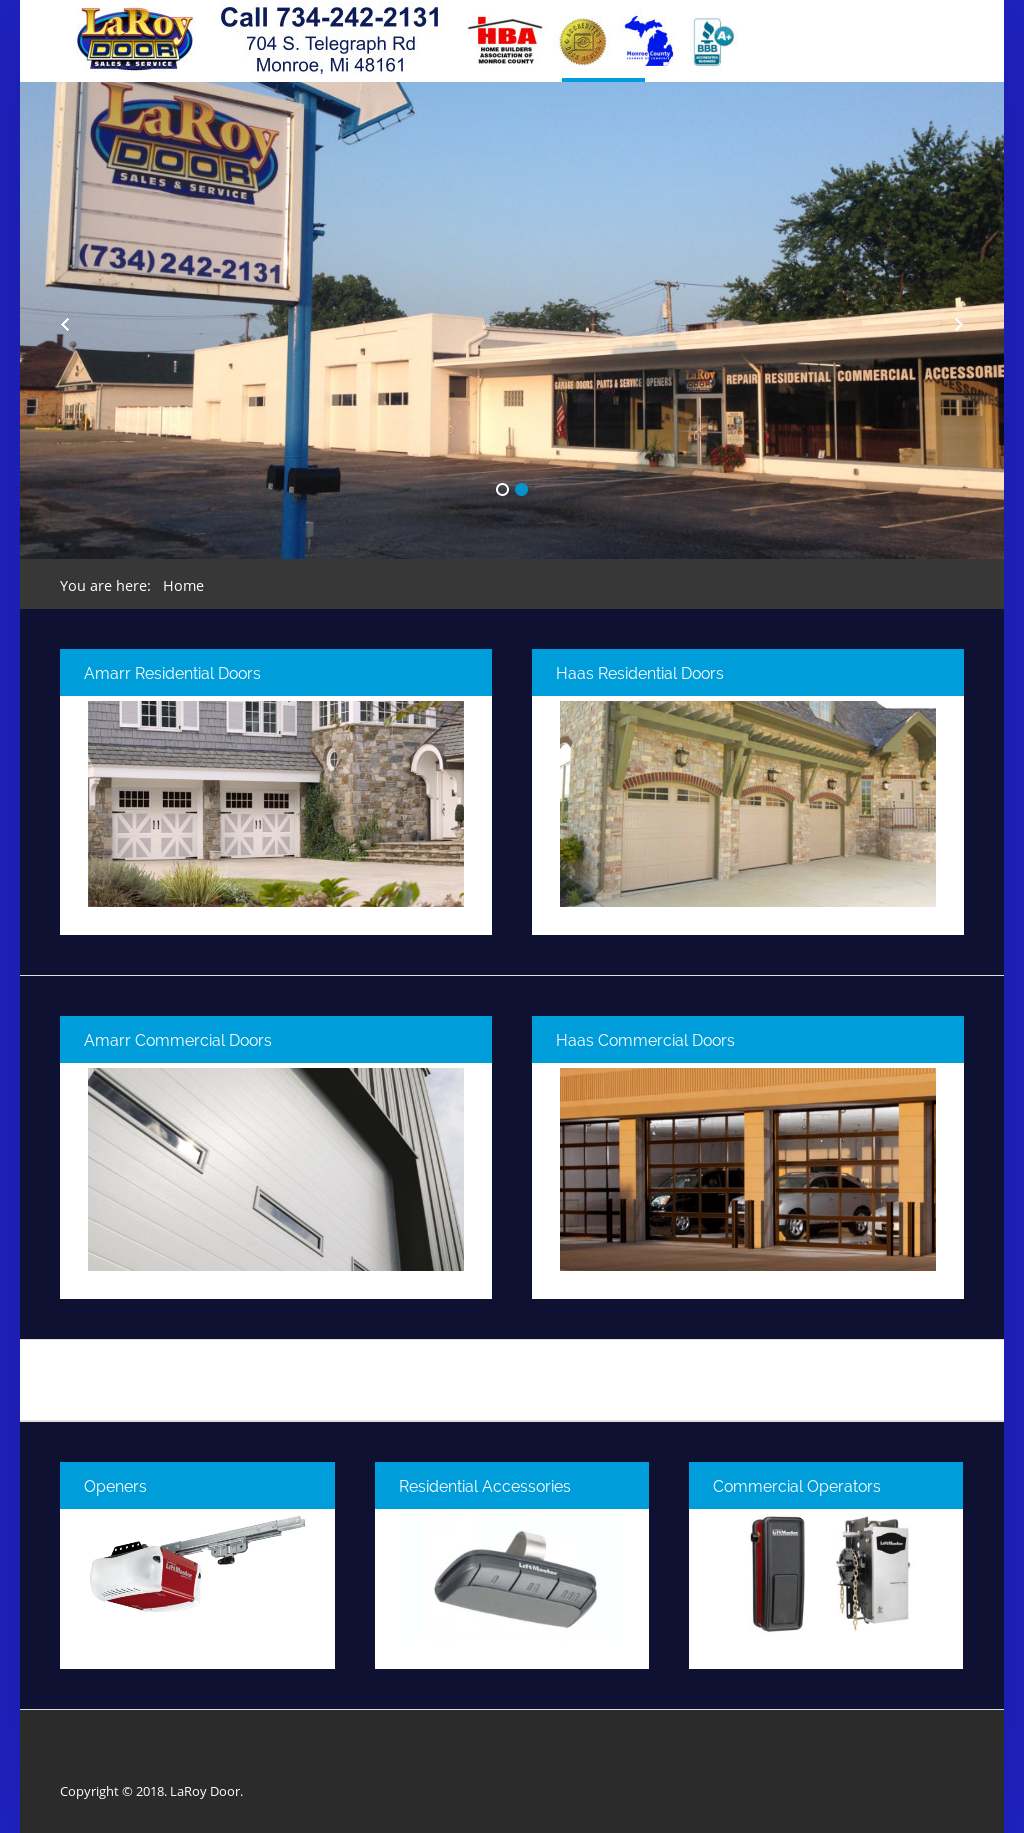 Exceptionnel Laroy Door And Contracting Website History